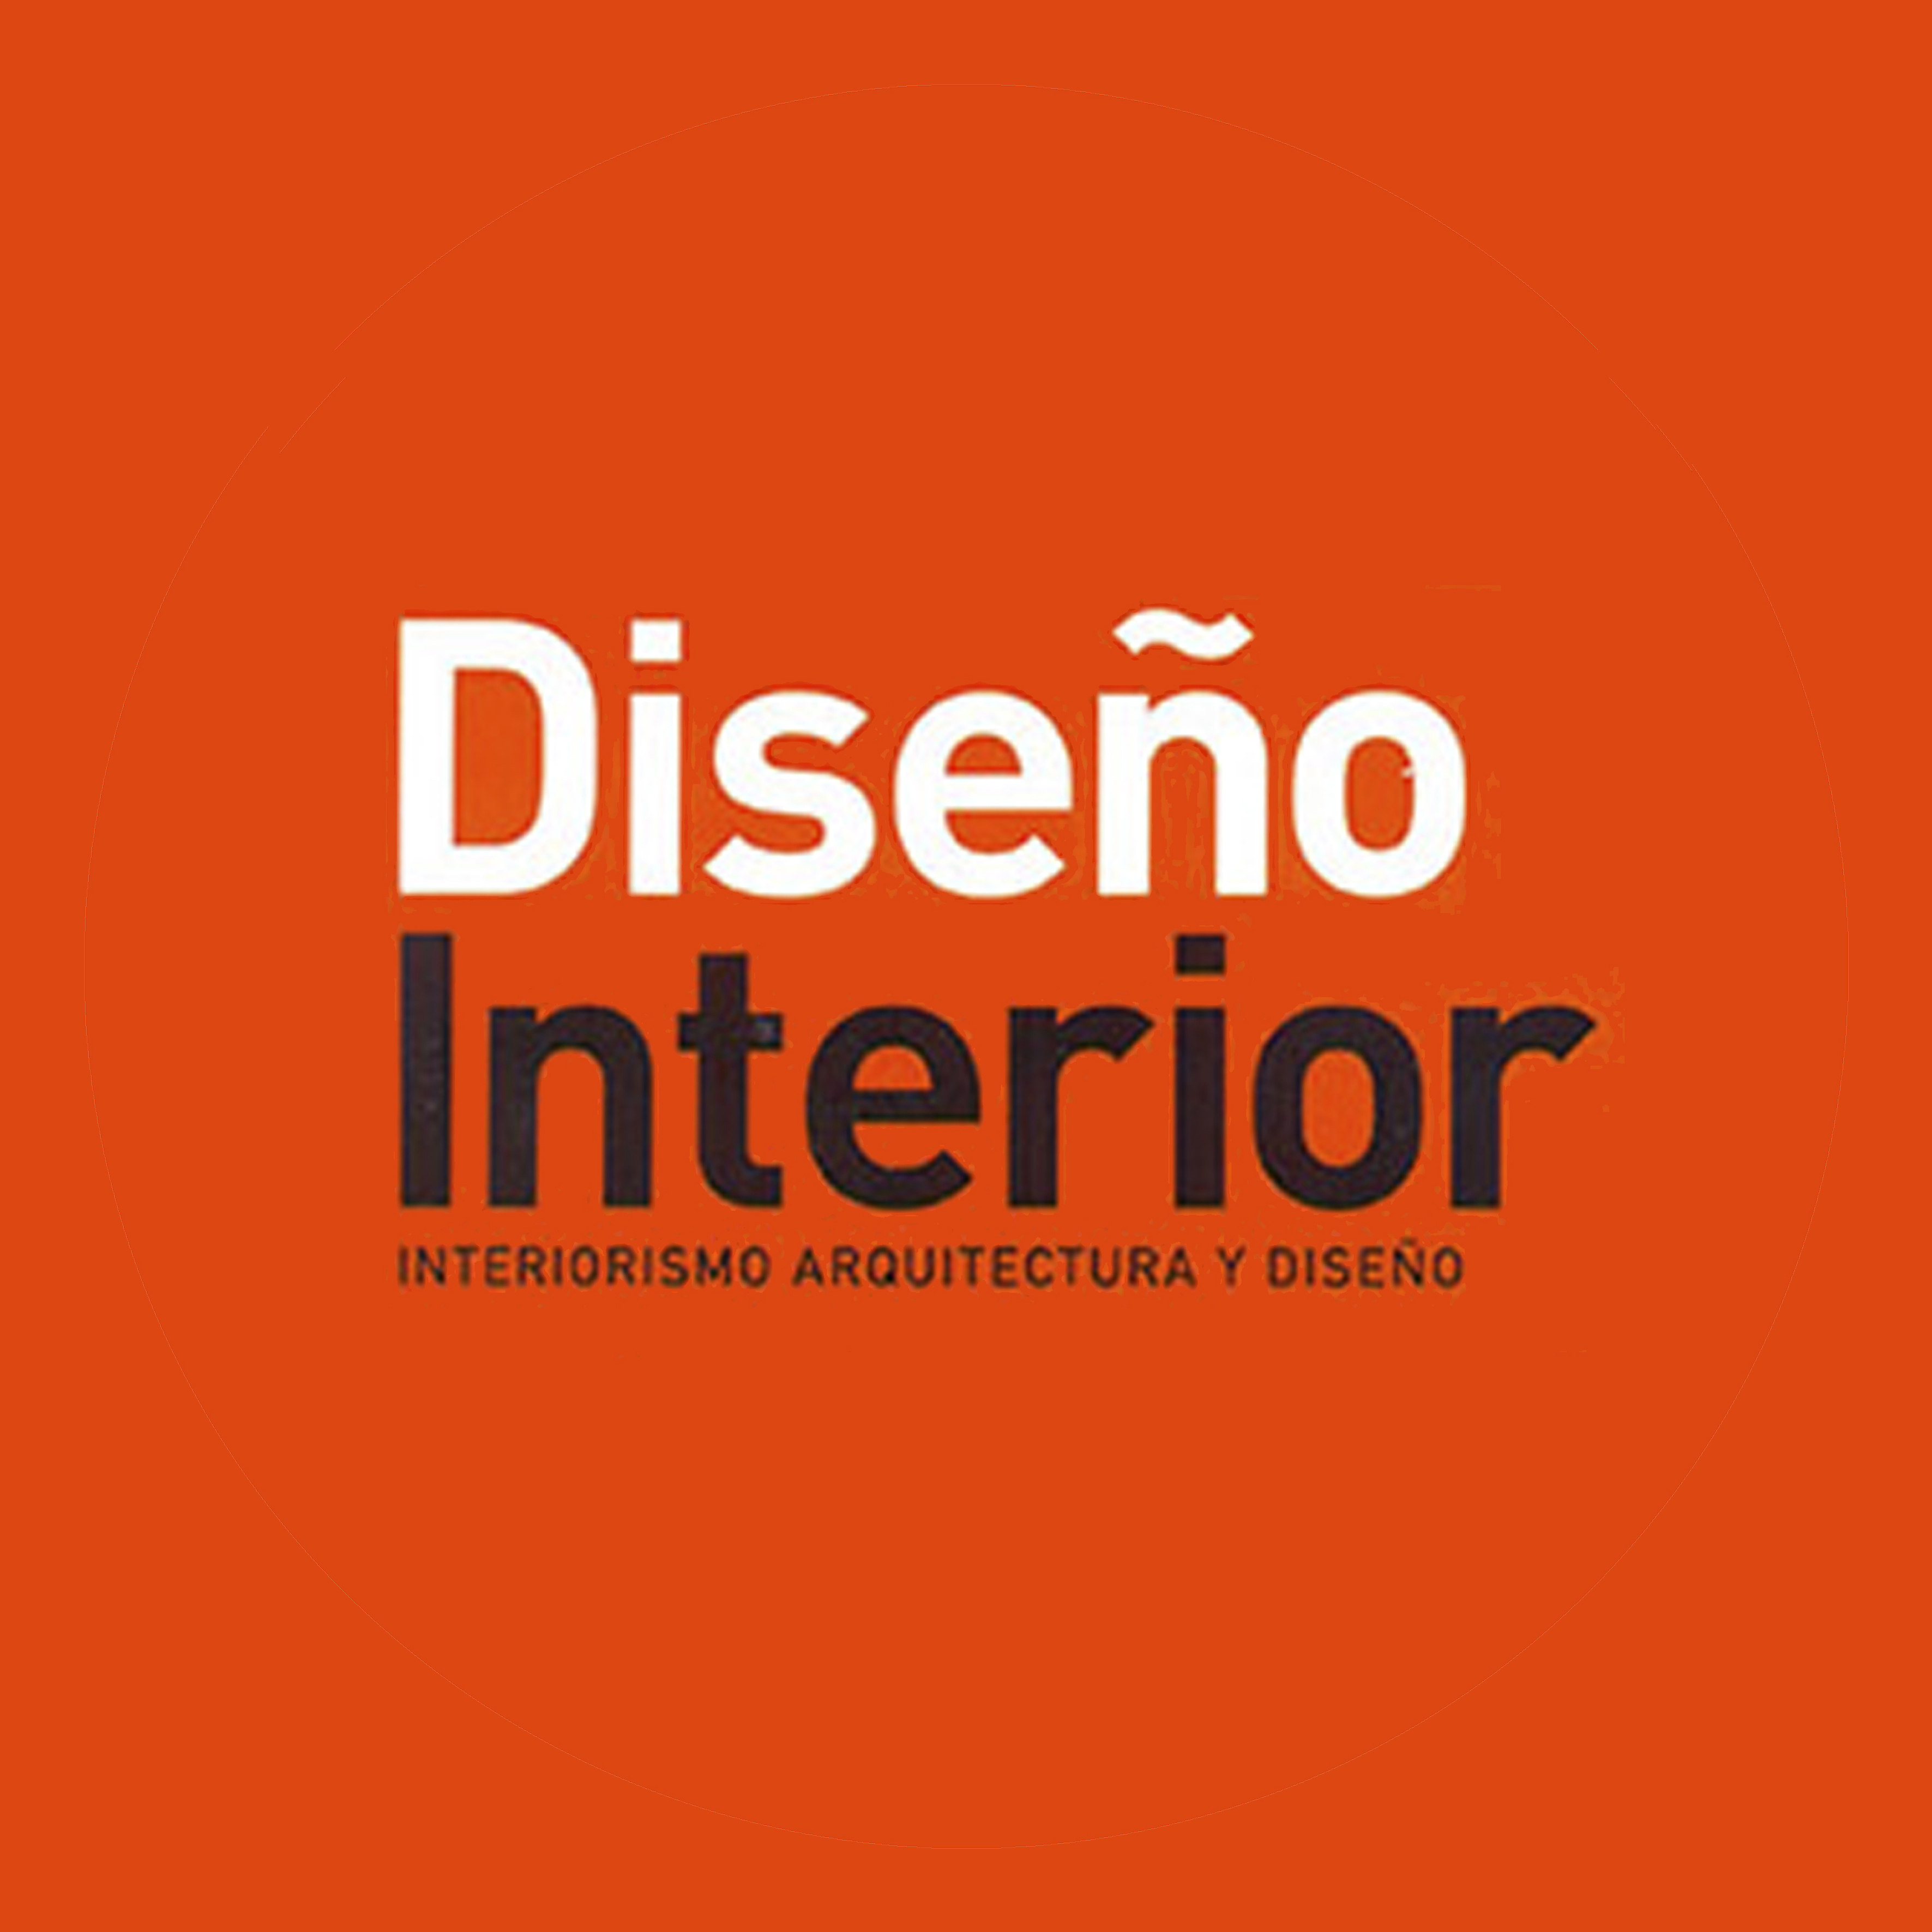 diseno-interior-magazine-spain-logo